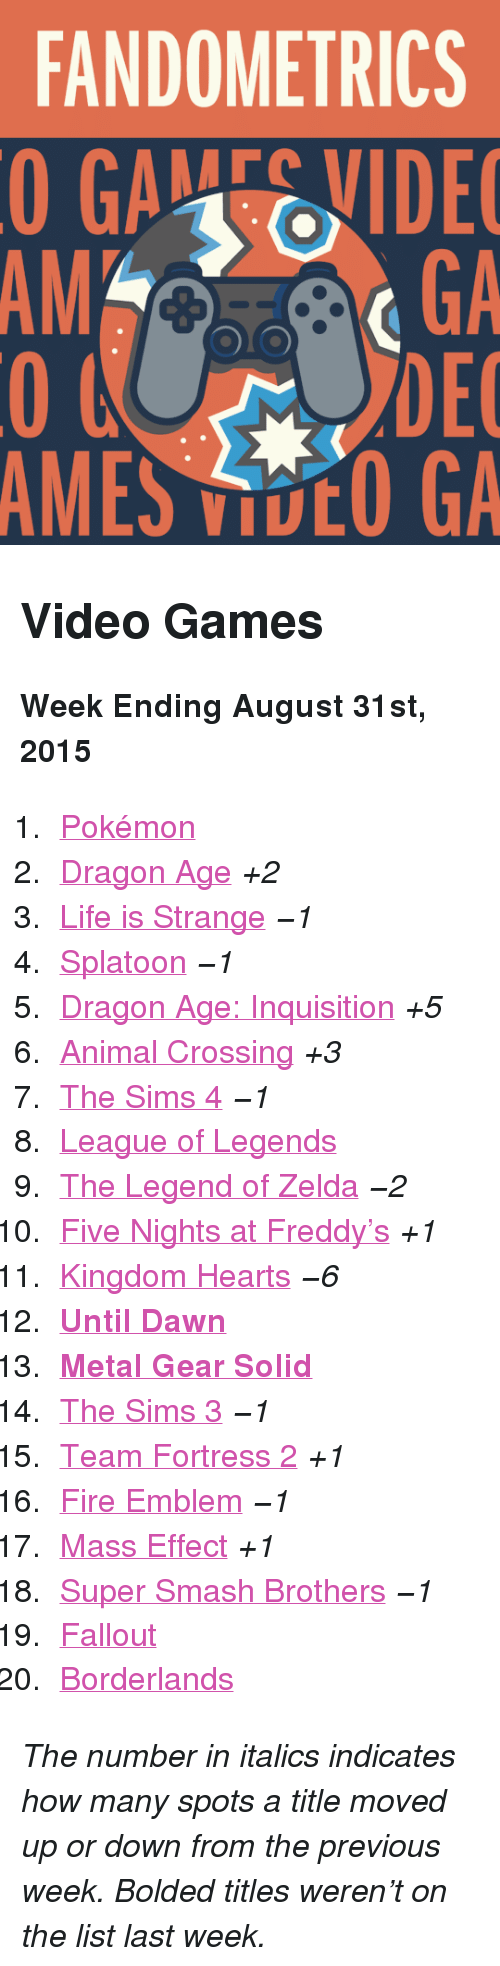 "Five Nights: FANDOMETRICS  GAEVIDE  GA  DEC  AMES VOO GA  AM <h2>Video Games</h2><p><b>Week Ending August 31st, 2015</b></p><ol><li><a href=""http://www.tumblr.com/search/pokemon"">Pokémon</a></li>  <li><a href=""http://www.tumblr.com/search/dragon%20age"">Dragon Age</a> <i>+2</i></li>  <li><a href=""http://www.tumblr.com/search/life%20is%20strange"">Life is Strange</a> <i>−1</i></li>  <li><a href=""http://www.tumblr.com/search/splatoon"">Splatoon</a> <i>−1</i></li>  <li><a href=""http://www.tumblr.com/search/dragon%20age%20inquisition"">Dragon Age: Inquisition</a> <i>+5</i></li>  <li><a href=""http://www.tumblr.com/search/acnl"">Animal Crossing</a> <i>+3</i></li>  <li><a href=""http://www.tumblr.com/search/sims%204"">The Sims 4</a> <i>−1</i></li>  <li><a href=""http://www.tumblr.com/search/league%20of%20legends"">League of Legends</a></li>  <li><a href=""http://www.tumblr.com/search/legend%20of%20zelda"">The Legend of Zelda</a> <i>−2</i></li>  <li><a href=""http://www.tumblr.com/search/five%20nights%20at%20freddy's"">Five Nights at Freddy&rsquo;s</a> <i>+1</i></li>  <li><a href=""http://www.tumblr.com/search/kingdom%20hearts"">Kingdom Hearts</a> <i>−6</i></li>  <li><a href=""http://www.tumblr.com/search/until%20dawn""><b>Until Dawn</b></a></li>  <li><a href=""http://www.tumblr.com/search/metal%20gear%20solid""><b>Metal Gear Solid</b></a></li>  <li><a href=""http://www.tumblr.com/search/sims%203"">The Sims 3</a> <i>−1</i></li>  <li><a href=""http://www.tumblr.com/search/tf2"">Team Fortress 2</a> <i>+1</i></li>  <li><a href=""http://www.tumblr.com/search/fire%20emblem"">Fire Emblem</a> <i>−1</i></li>  <li><a href=""http://www.tumblr.com/search/mass%20effect"">Mass Effect</a> <i>+1</i></li>  <li><a href=""http://www.tumblr.com/search/super%20smash%20bros"">Super Smash Brothers</a> <i>−1</i></li>  <li><a href=""http://www.tumblr.com/search/fallout"">Fallout</a></li>  <li><a href=""http://www.tumblr.com/search/borderlands"">Borderlands</a></li></ol><p><i>The number in italics indicates how many spots a title moved up or down from the previous week. Bolded titles weren't on the list last week.</i></p>"